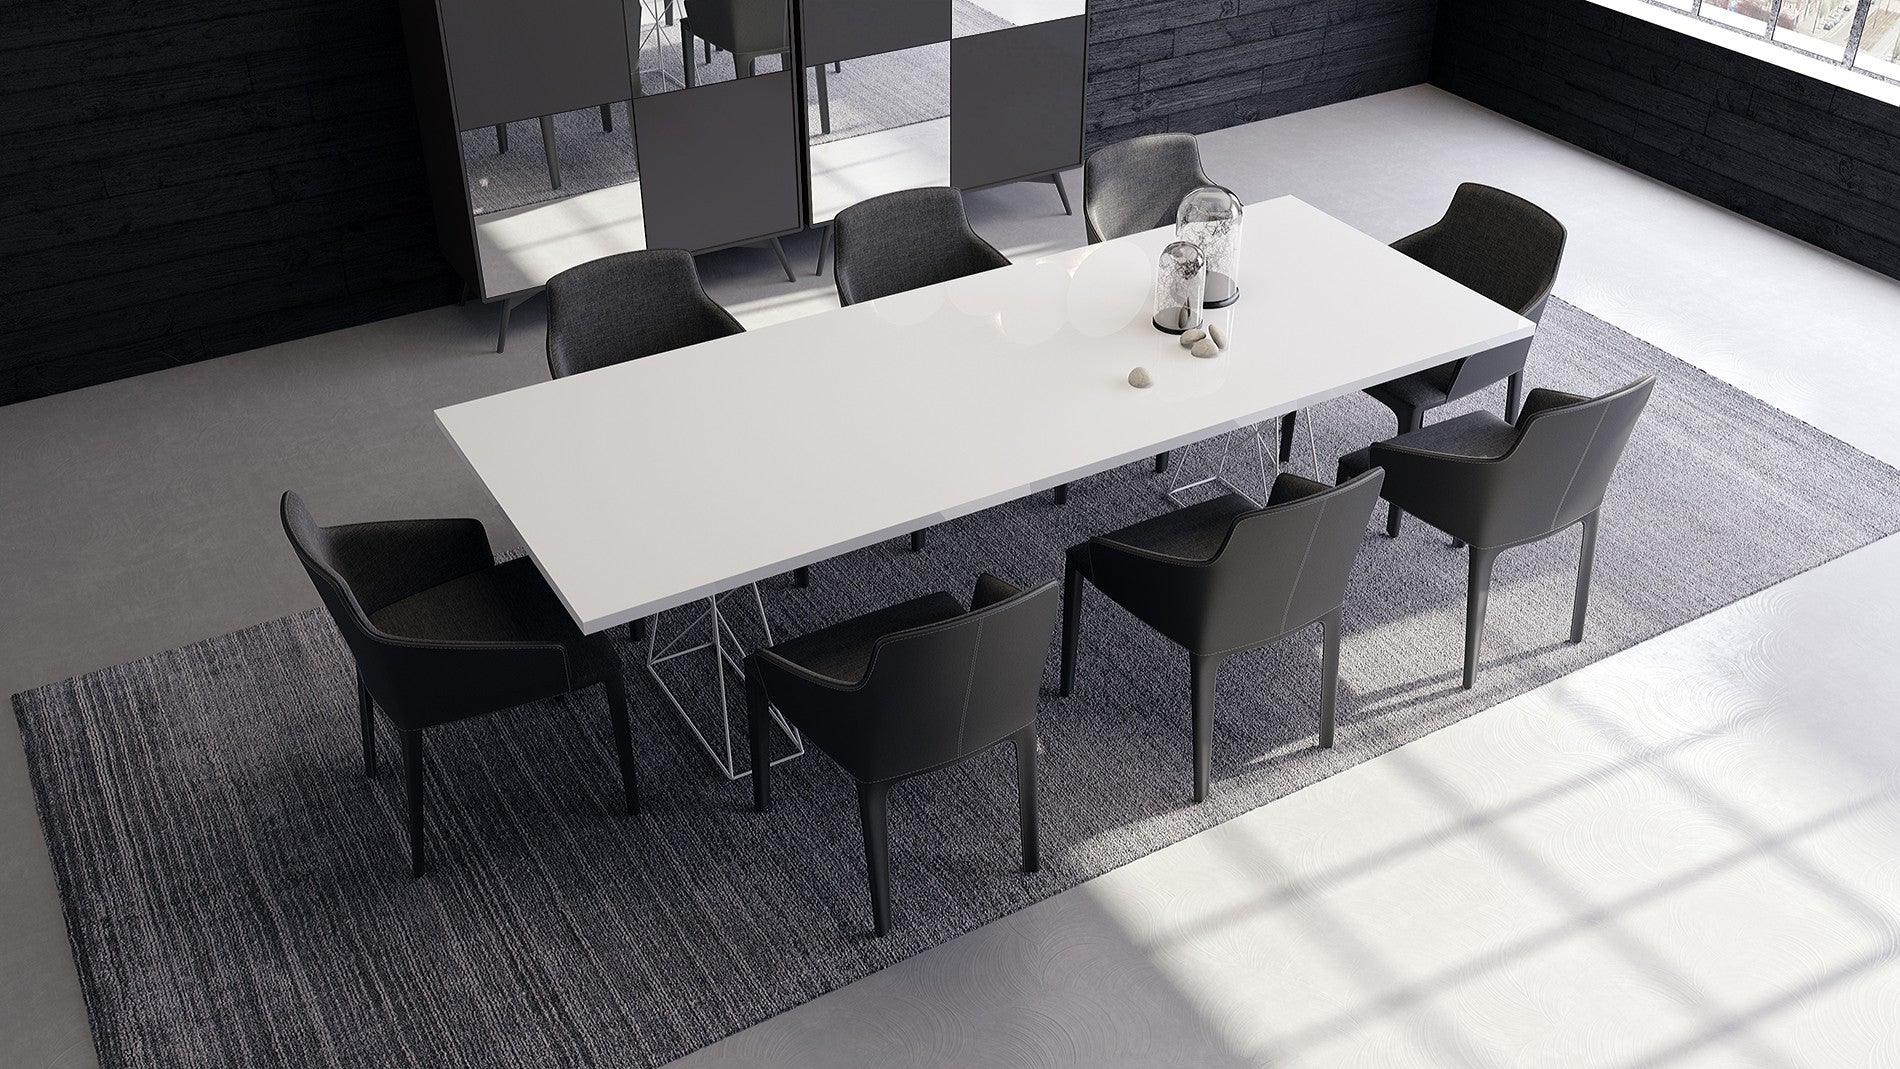 Curzon White Lacquer Dining Table 87 or 102 Euro Living